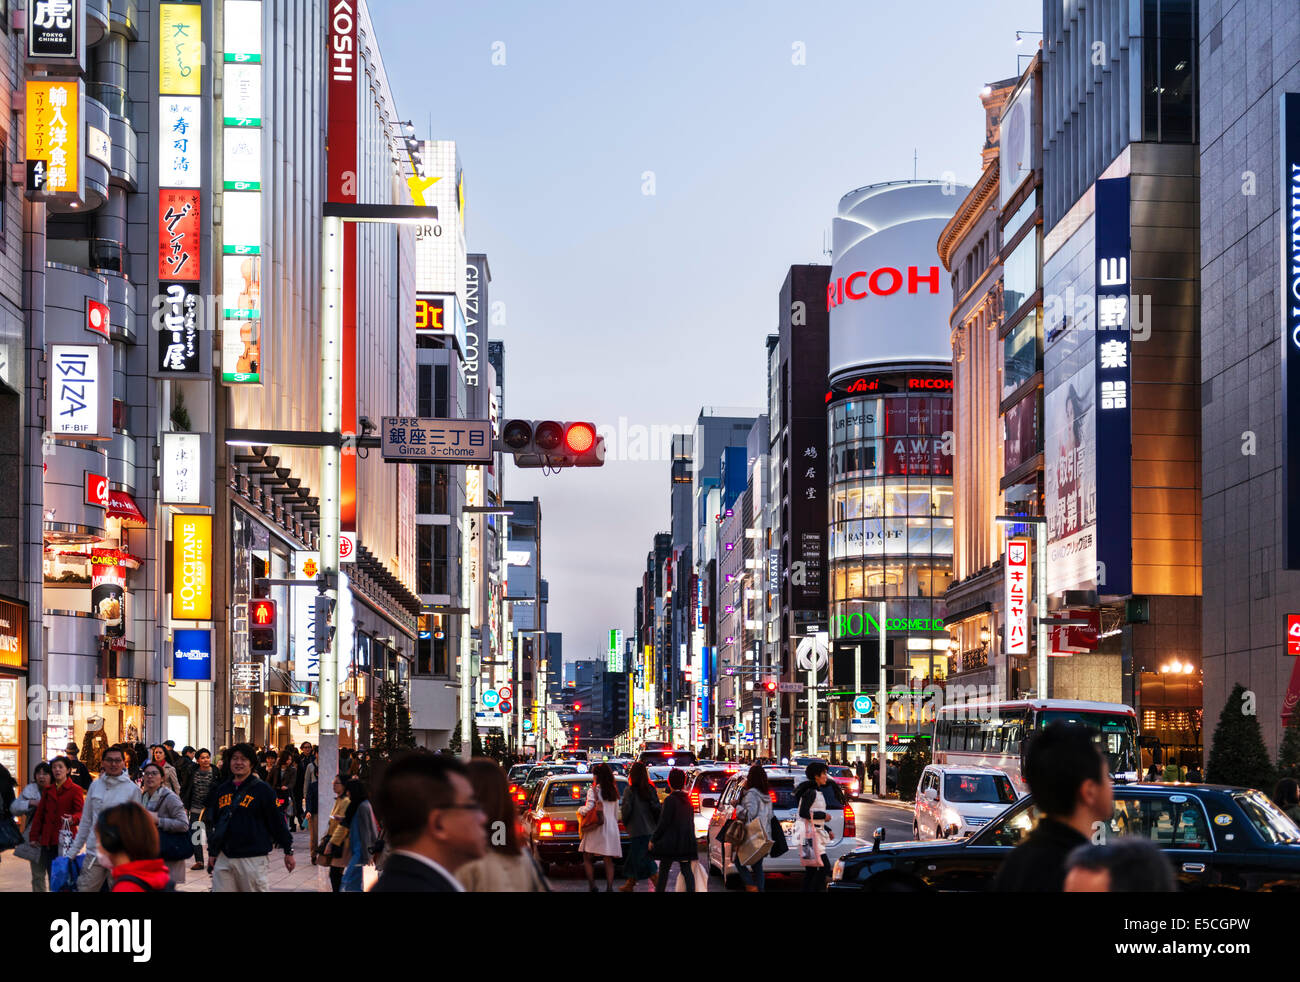 Tokyo city streets filled with people and cars at dusk. Ginza, Tokyo, Japan 2014 Stock Photo